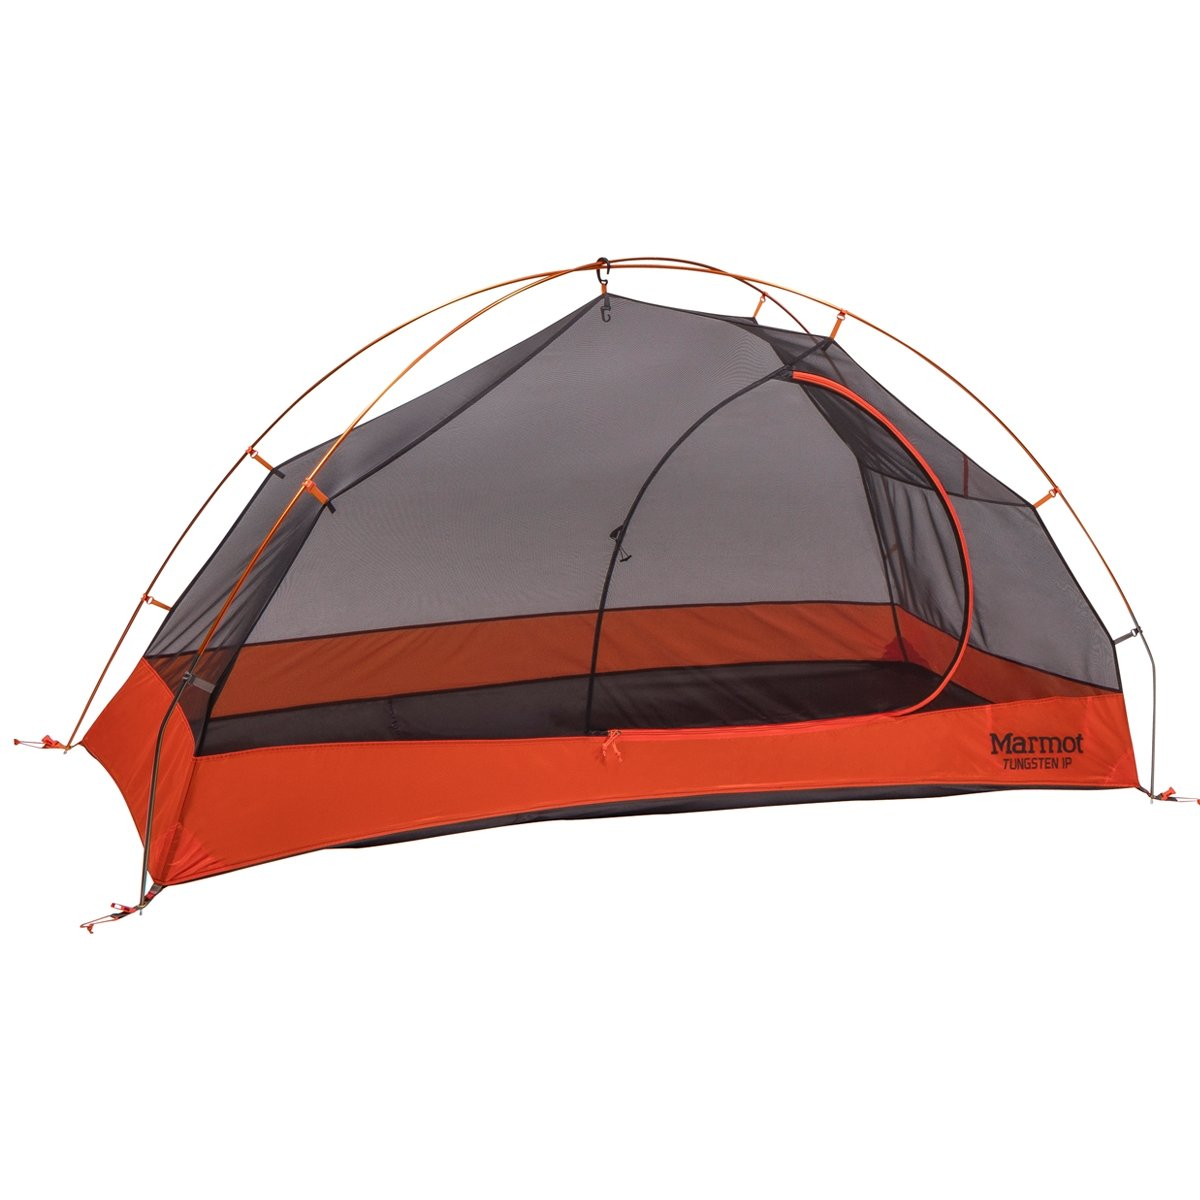 5. Marmot Tungsten Backpacking Tent